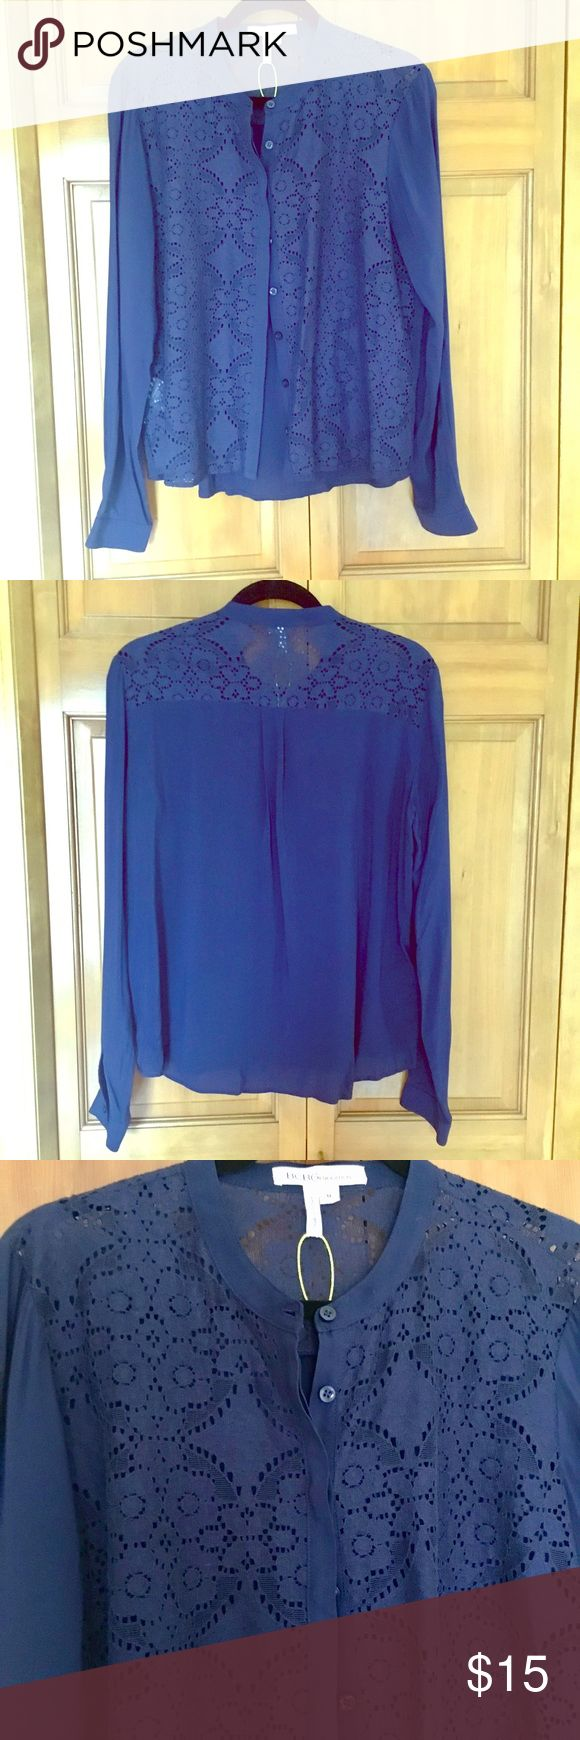 BCBG Generation blue faux lace button down blouse Like new condition/never worn/some tags still attached.  Perfect to wear to work/school or dress up for a night out! BCBGeneration Tops Button Down Shirts